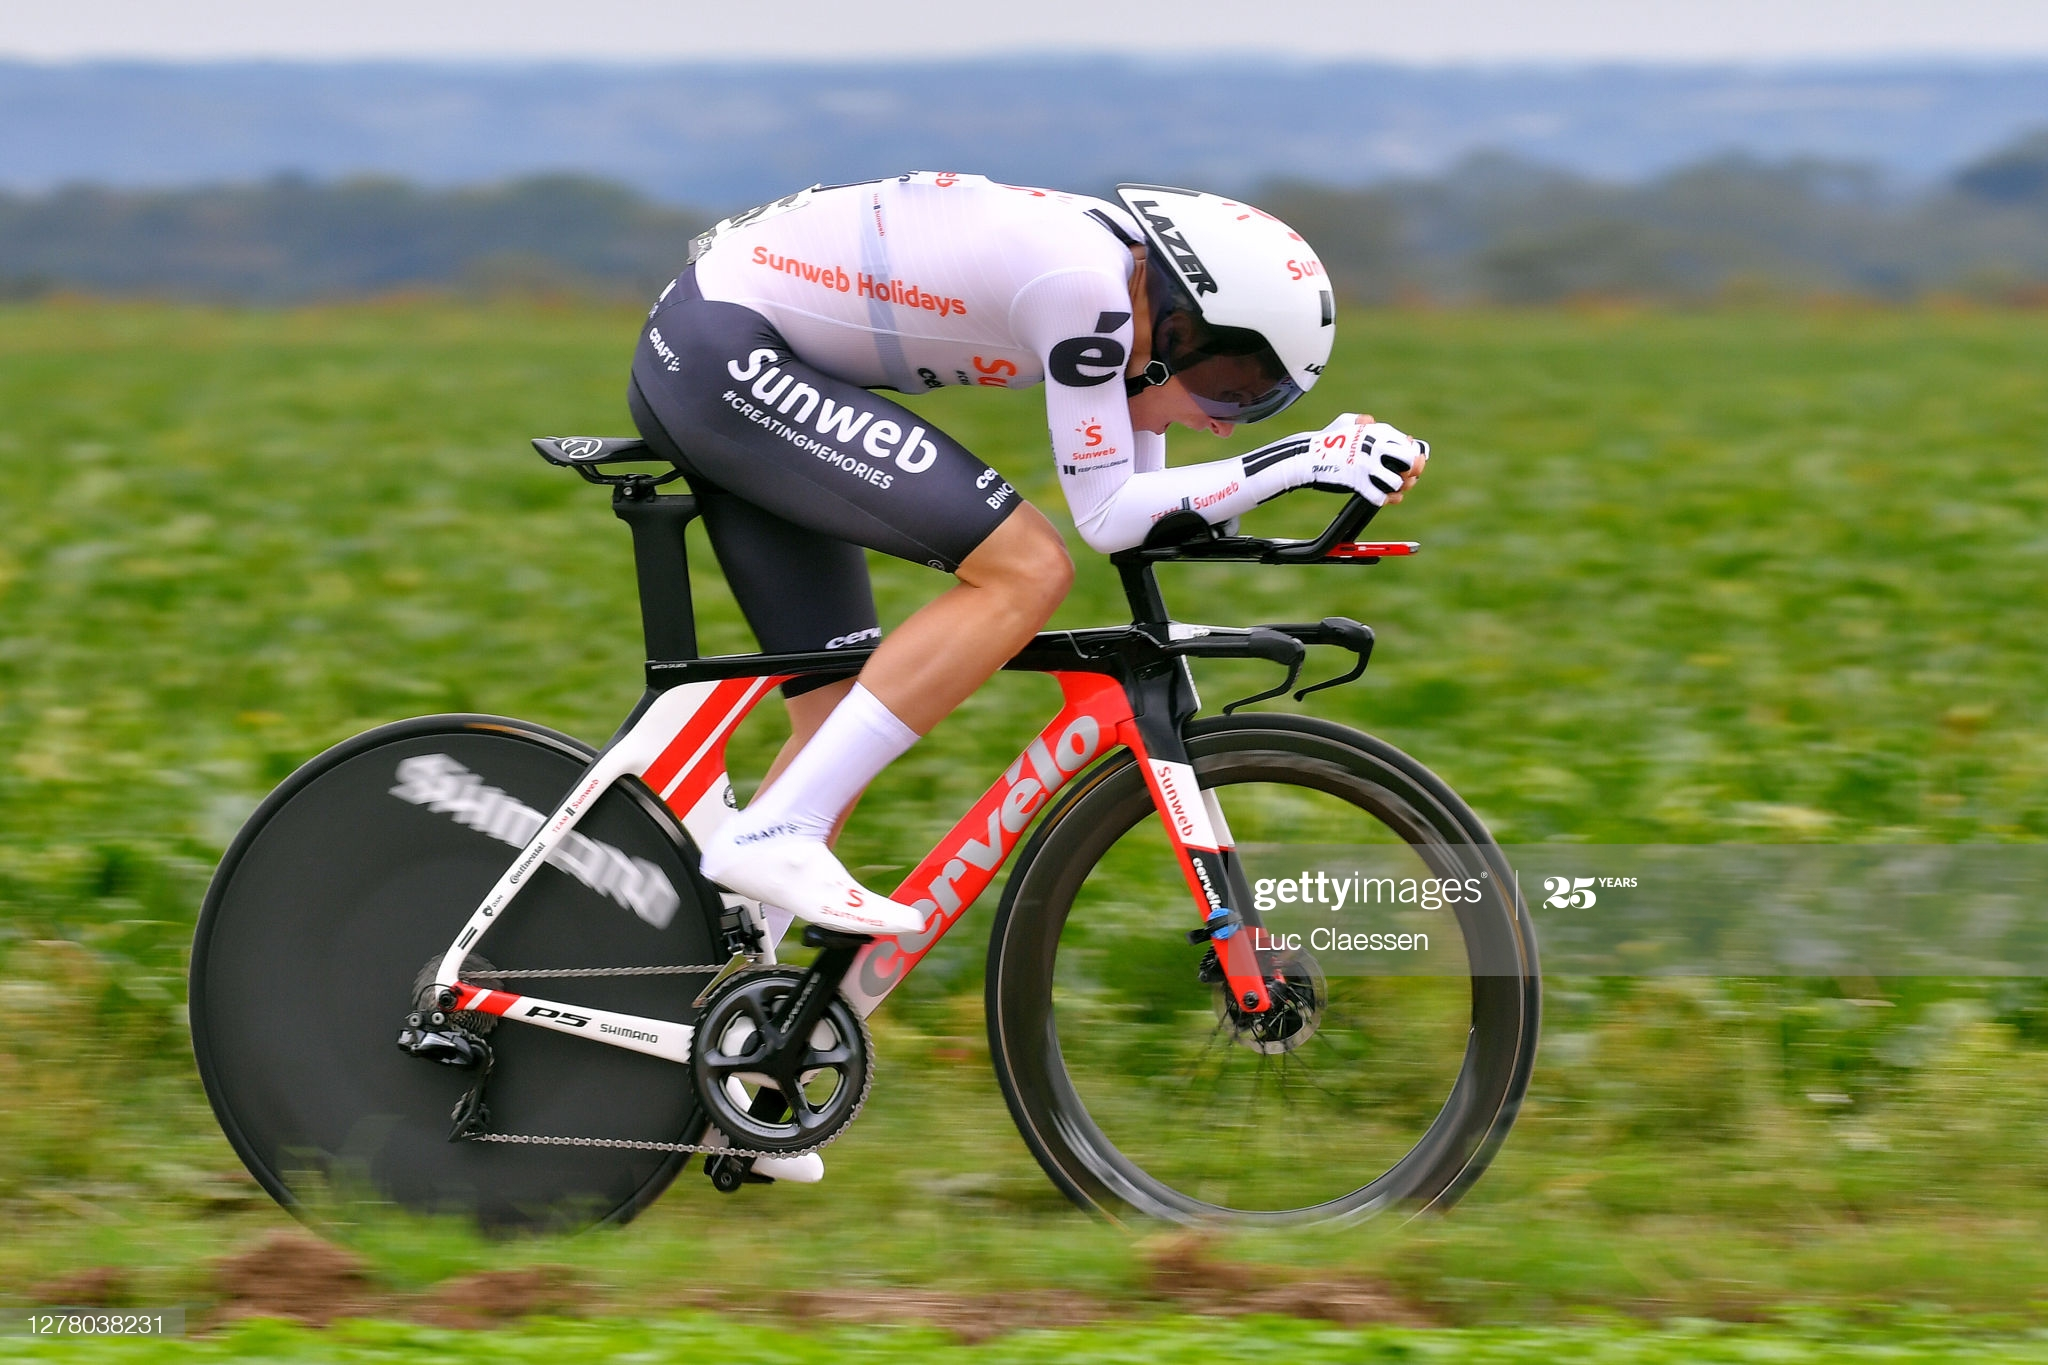 RIEMST, BELGIUM - OCTOBER 02: Martin Salmon of Germany and Team Sunweb / during the 16th BinckBank Tour 2020, Stage 4 a 8,14km Individual Time Trial from Riemst to Riemst / ITT / @BinckBankTour / #BinckBankTour / on October 02, 2020 in Riemst, Belgium. (Photo by Luc Claessen/Getty Images)